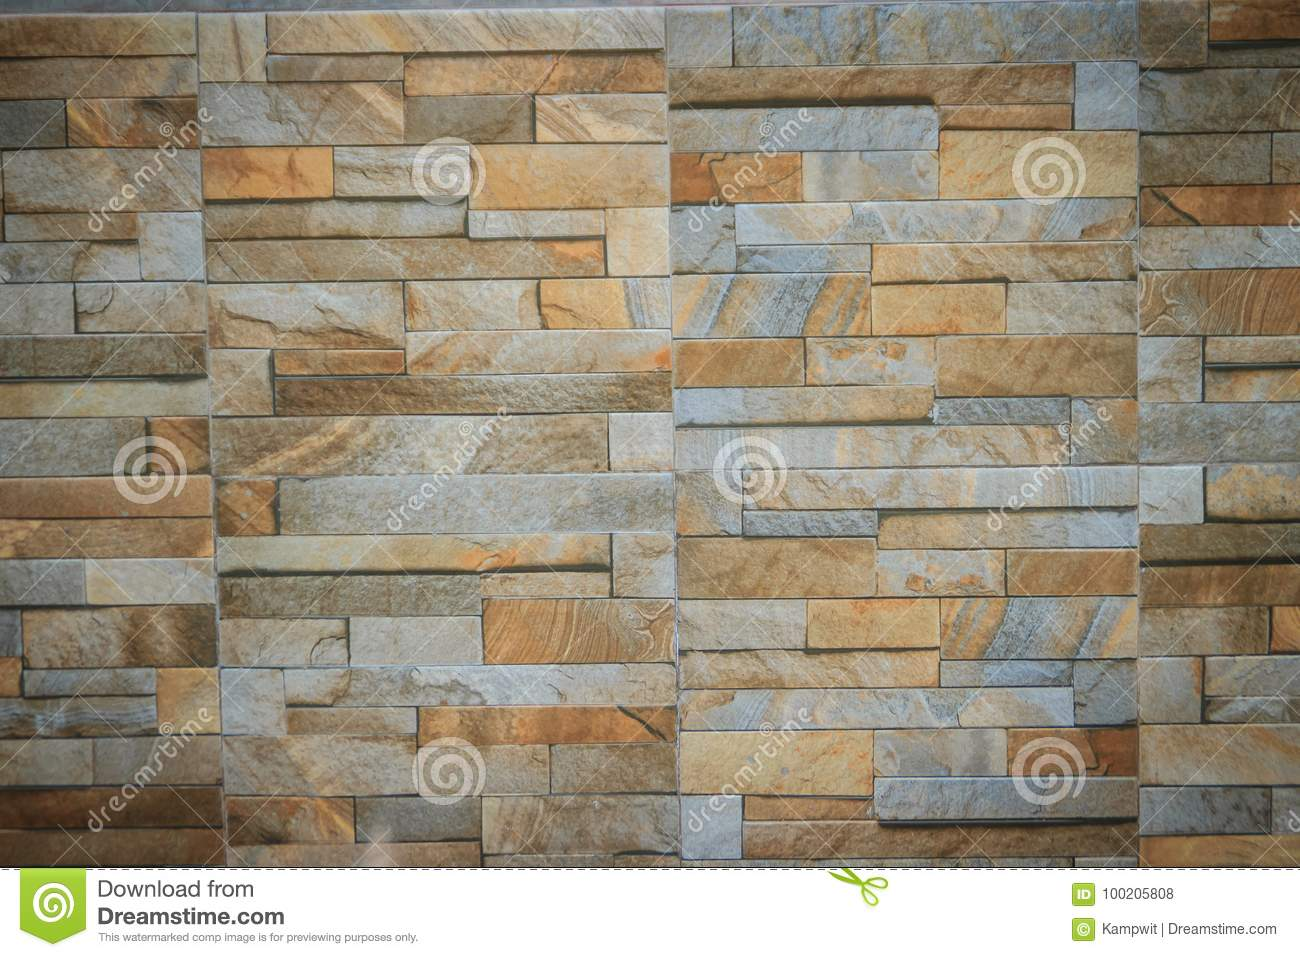 Wall tiles patterned like natural split stone background. simulated